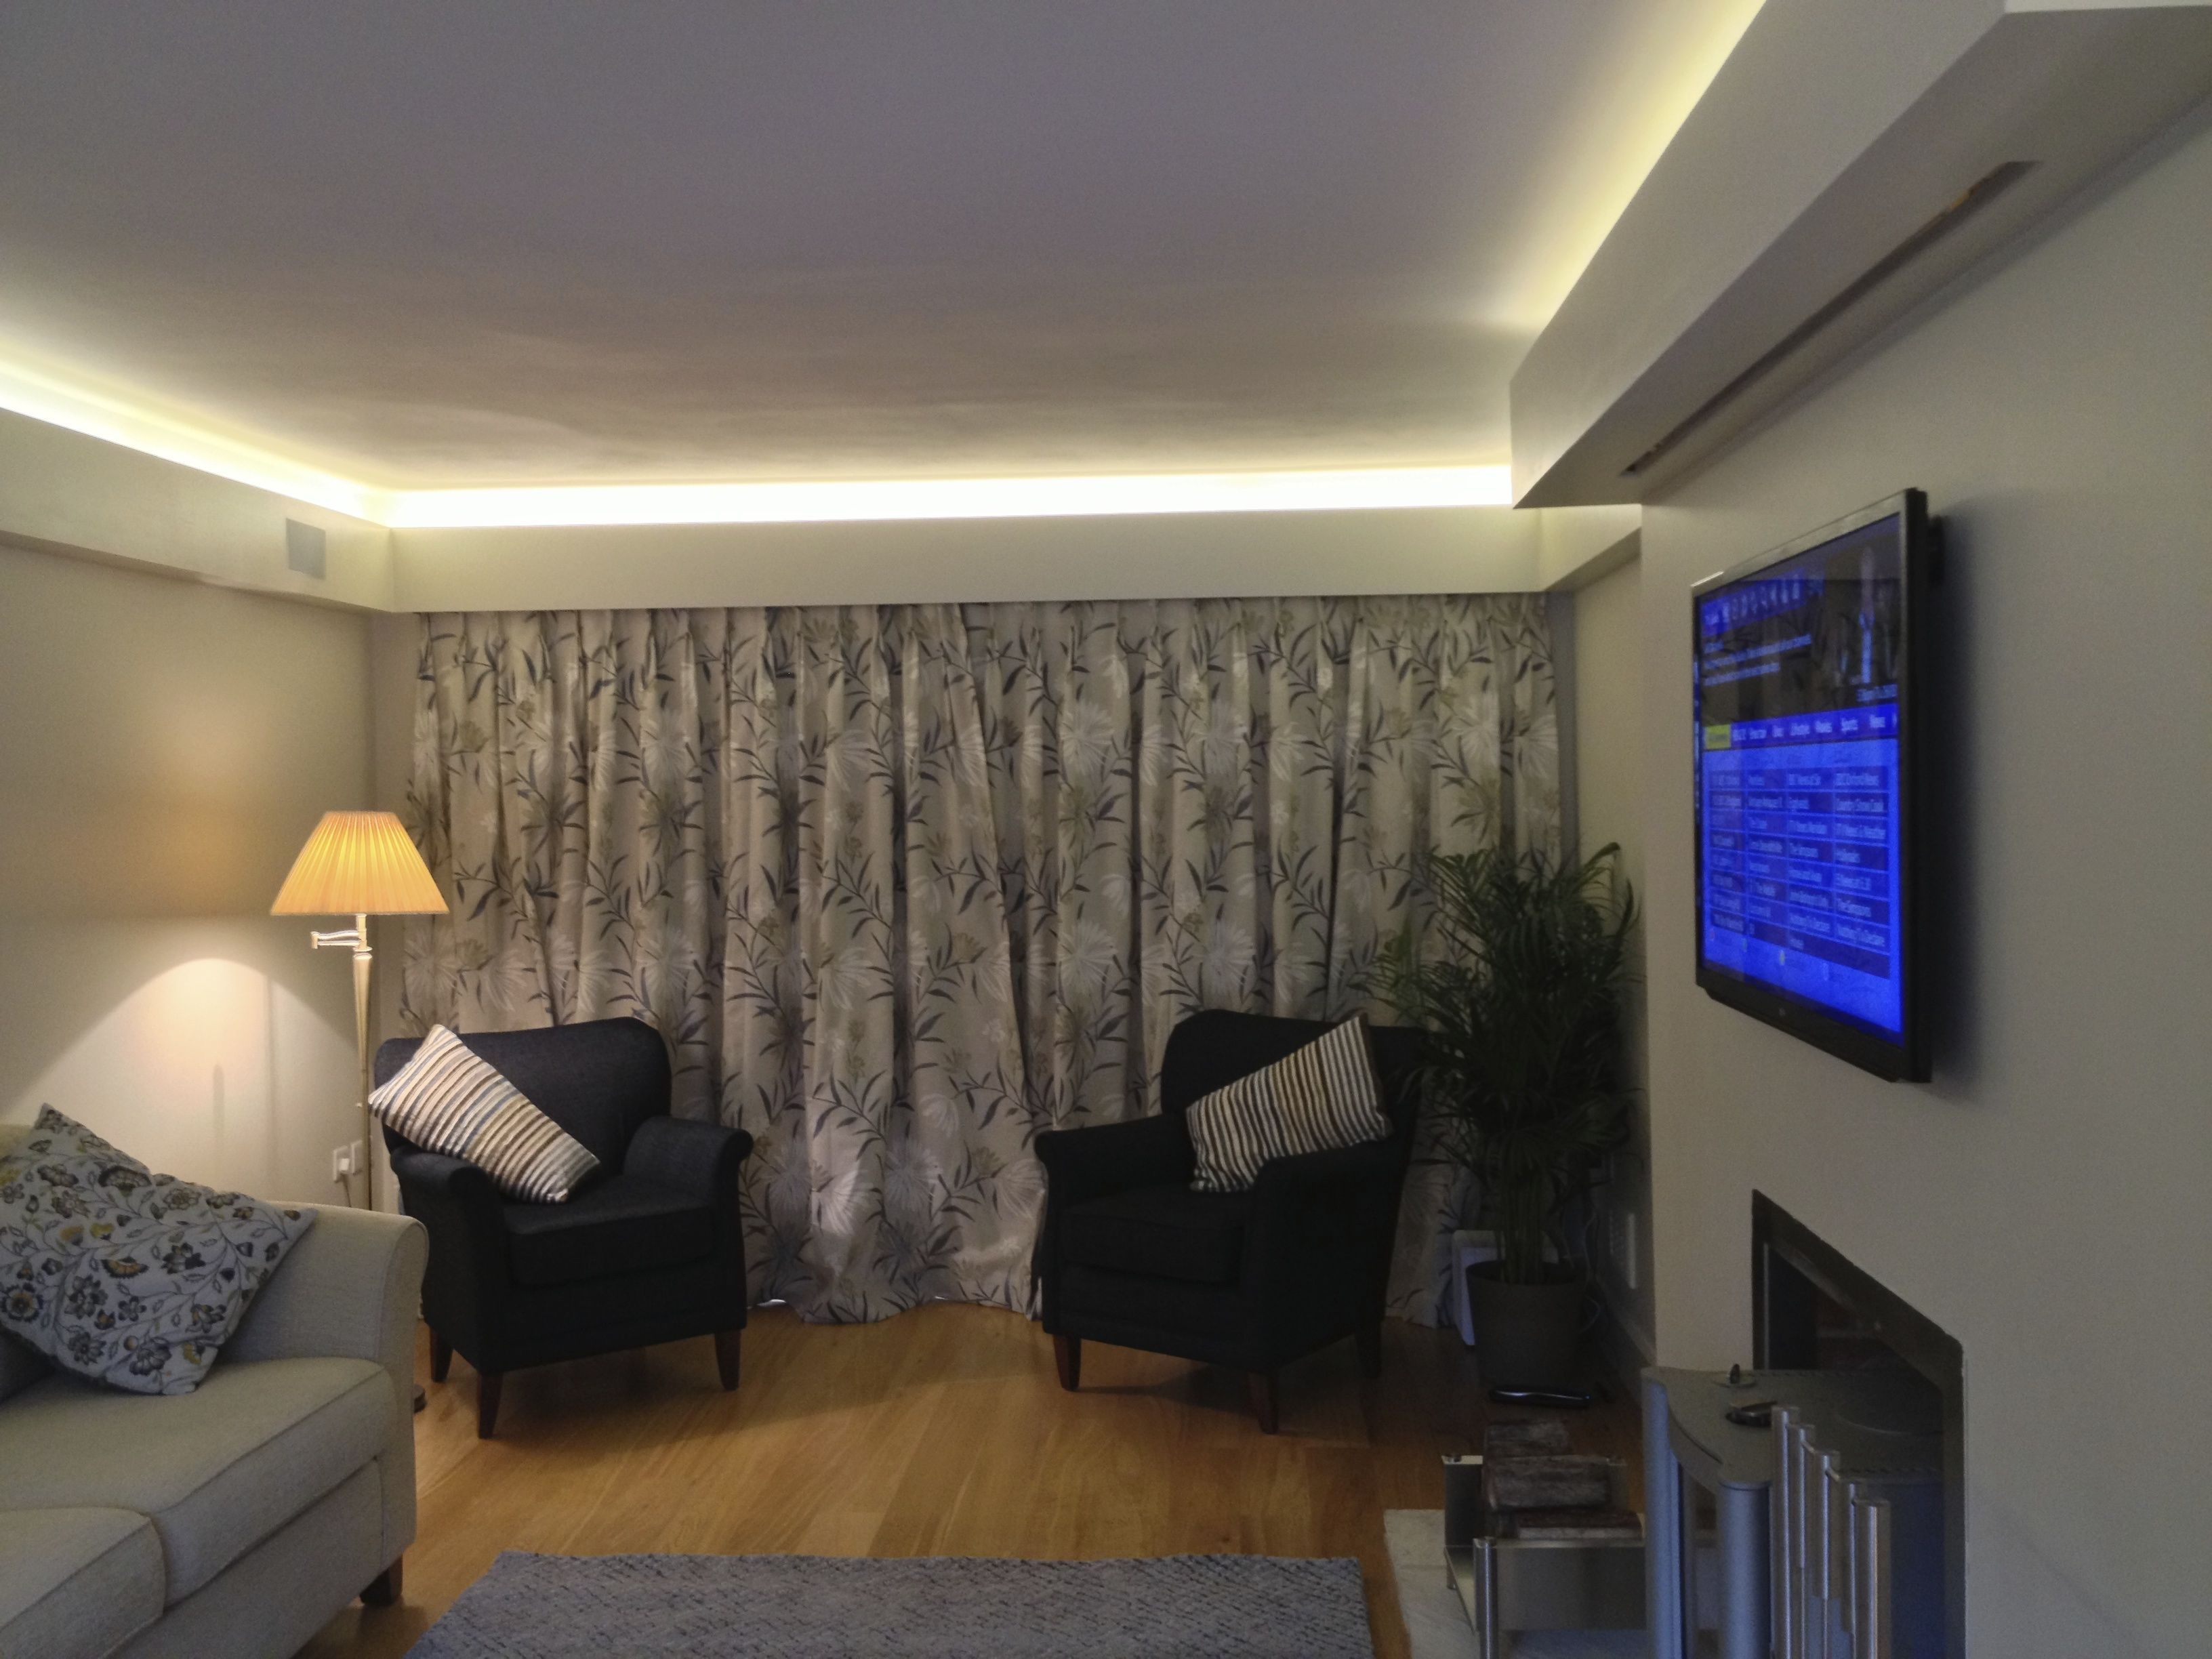 Cool led strip lights supplied by led hut used with rako lighting cool led strip lights supplied by led hut used with rako lighting controls installed by installation man ltd bespoke smart homes av lighting home aloadofball Image collections